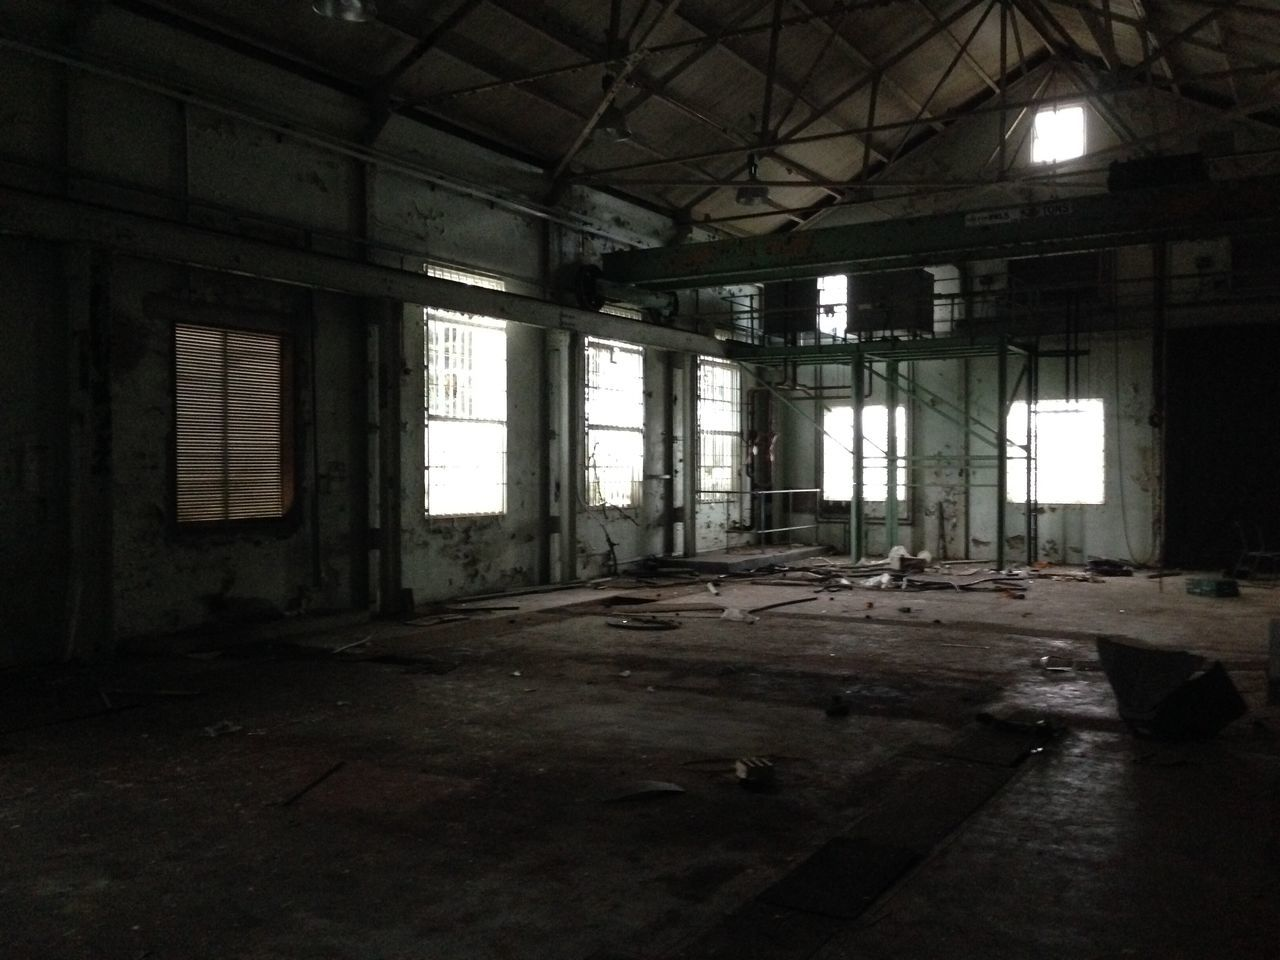 abandoned, destruction, dirty, empty, ceiling, indoors, damaged, window, run-down, spooky, old ruin, rusty, architecture, desolate, no people, rotting, deserted, bleak, day